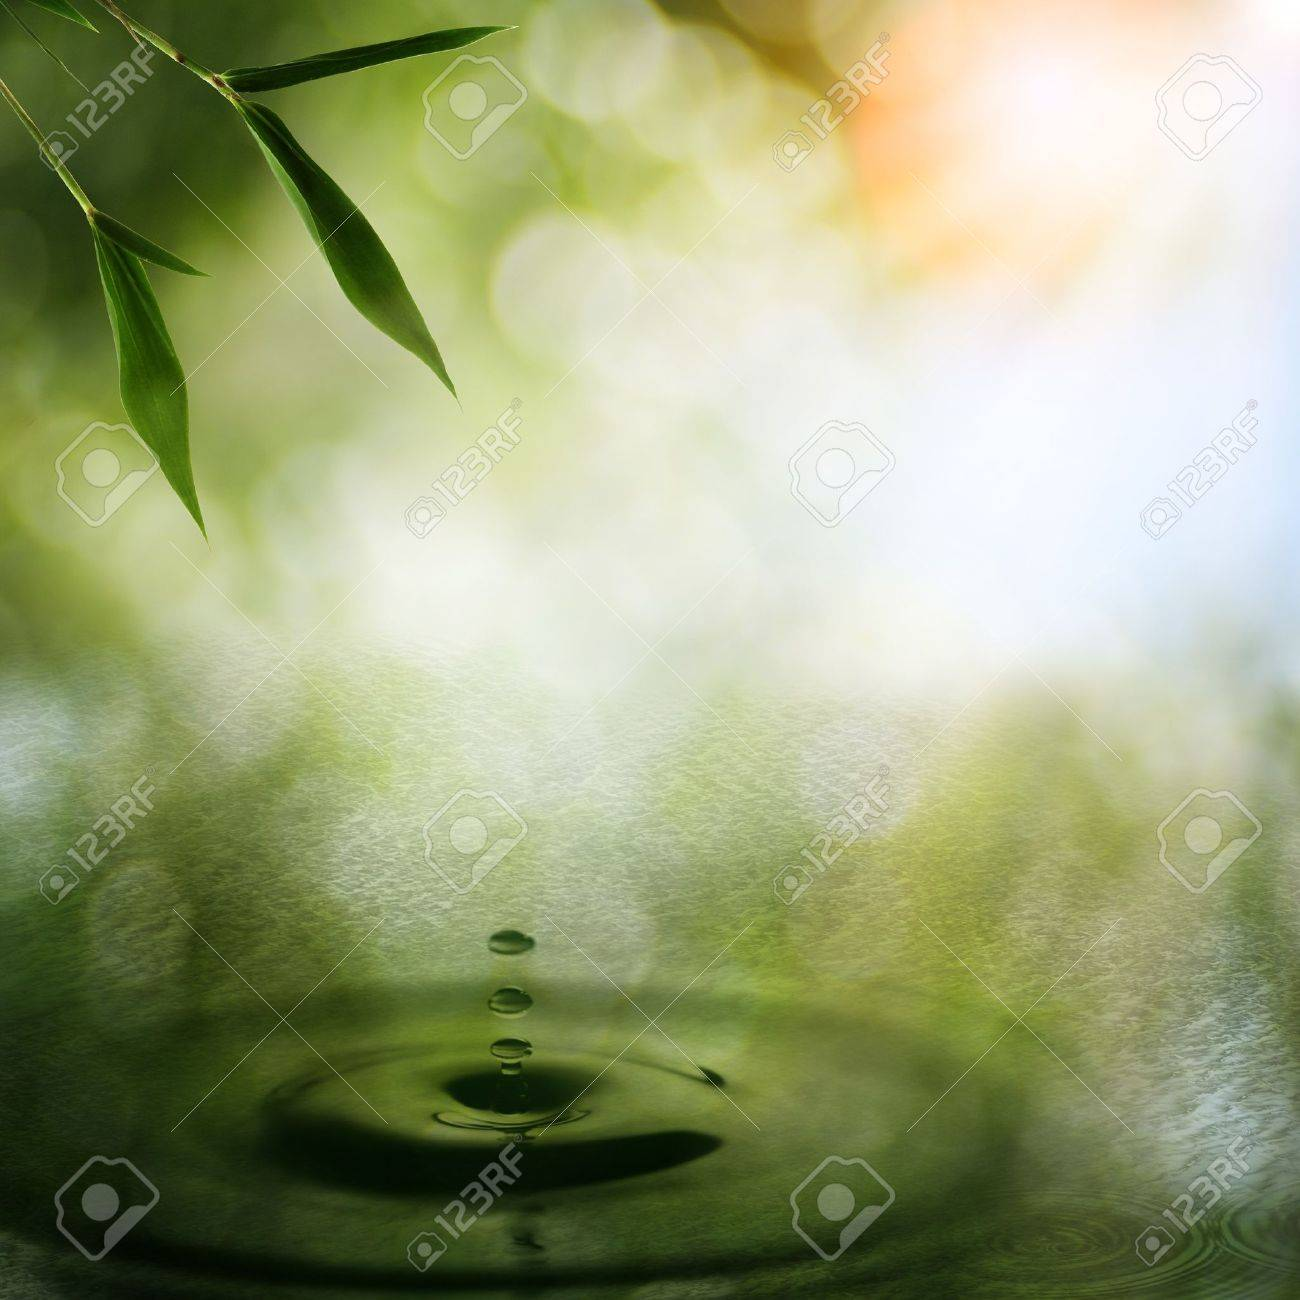 Abstract oriental backgrounds with bamboo foliage Stock Photo - 15071170